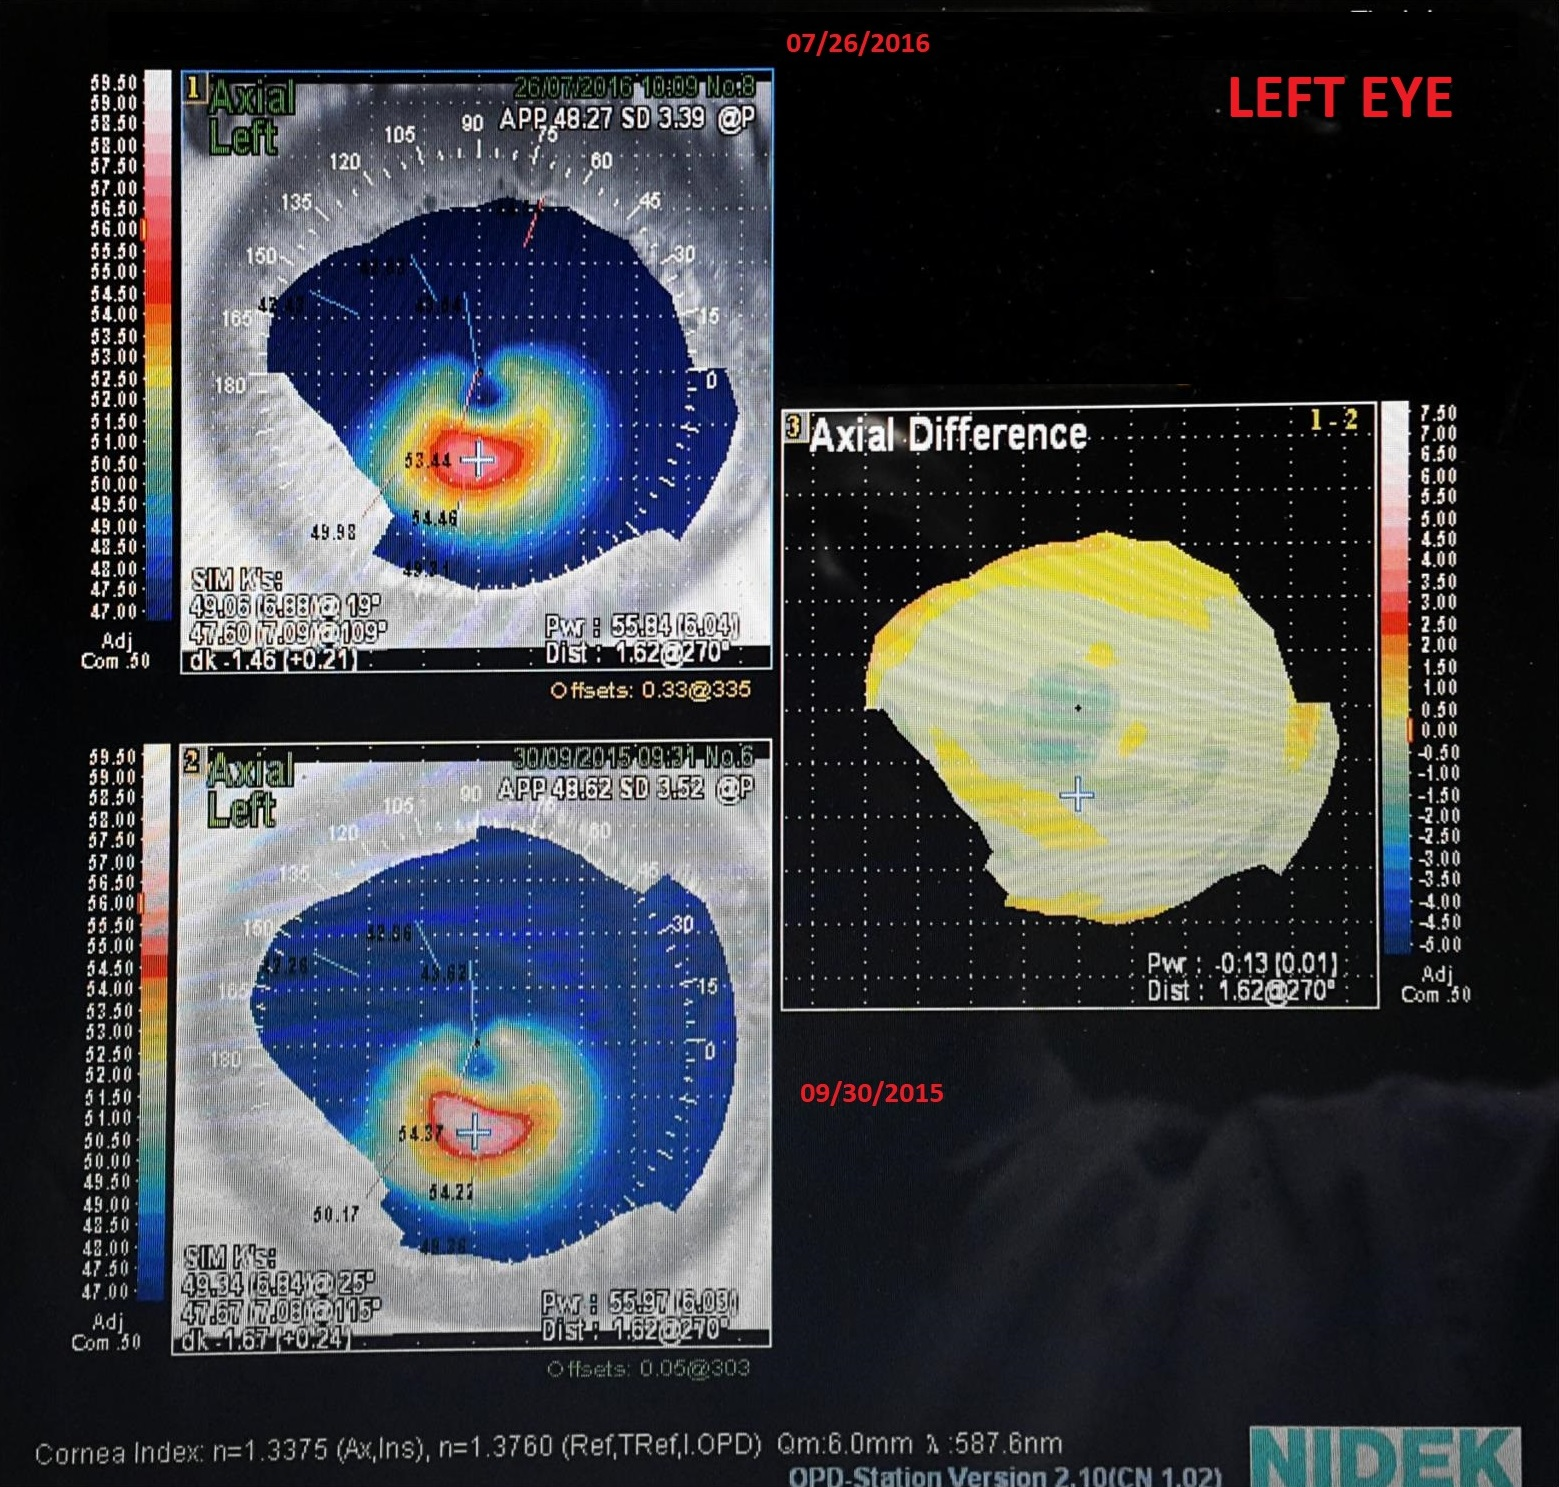 difference map showing the absence of progression of a keratoconus on the left eye